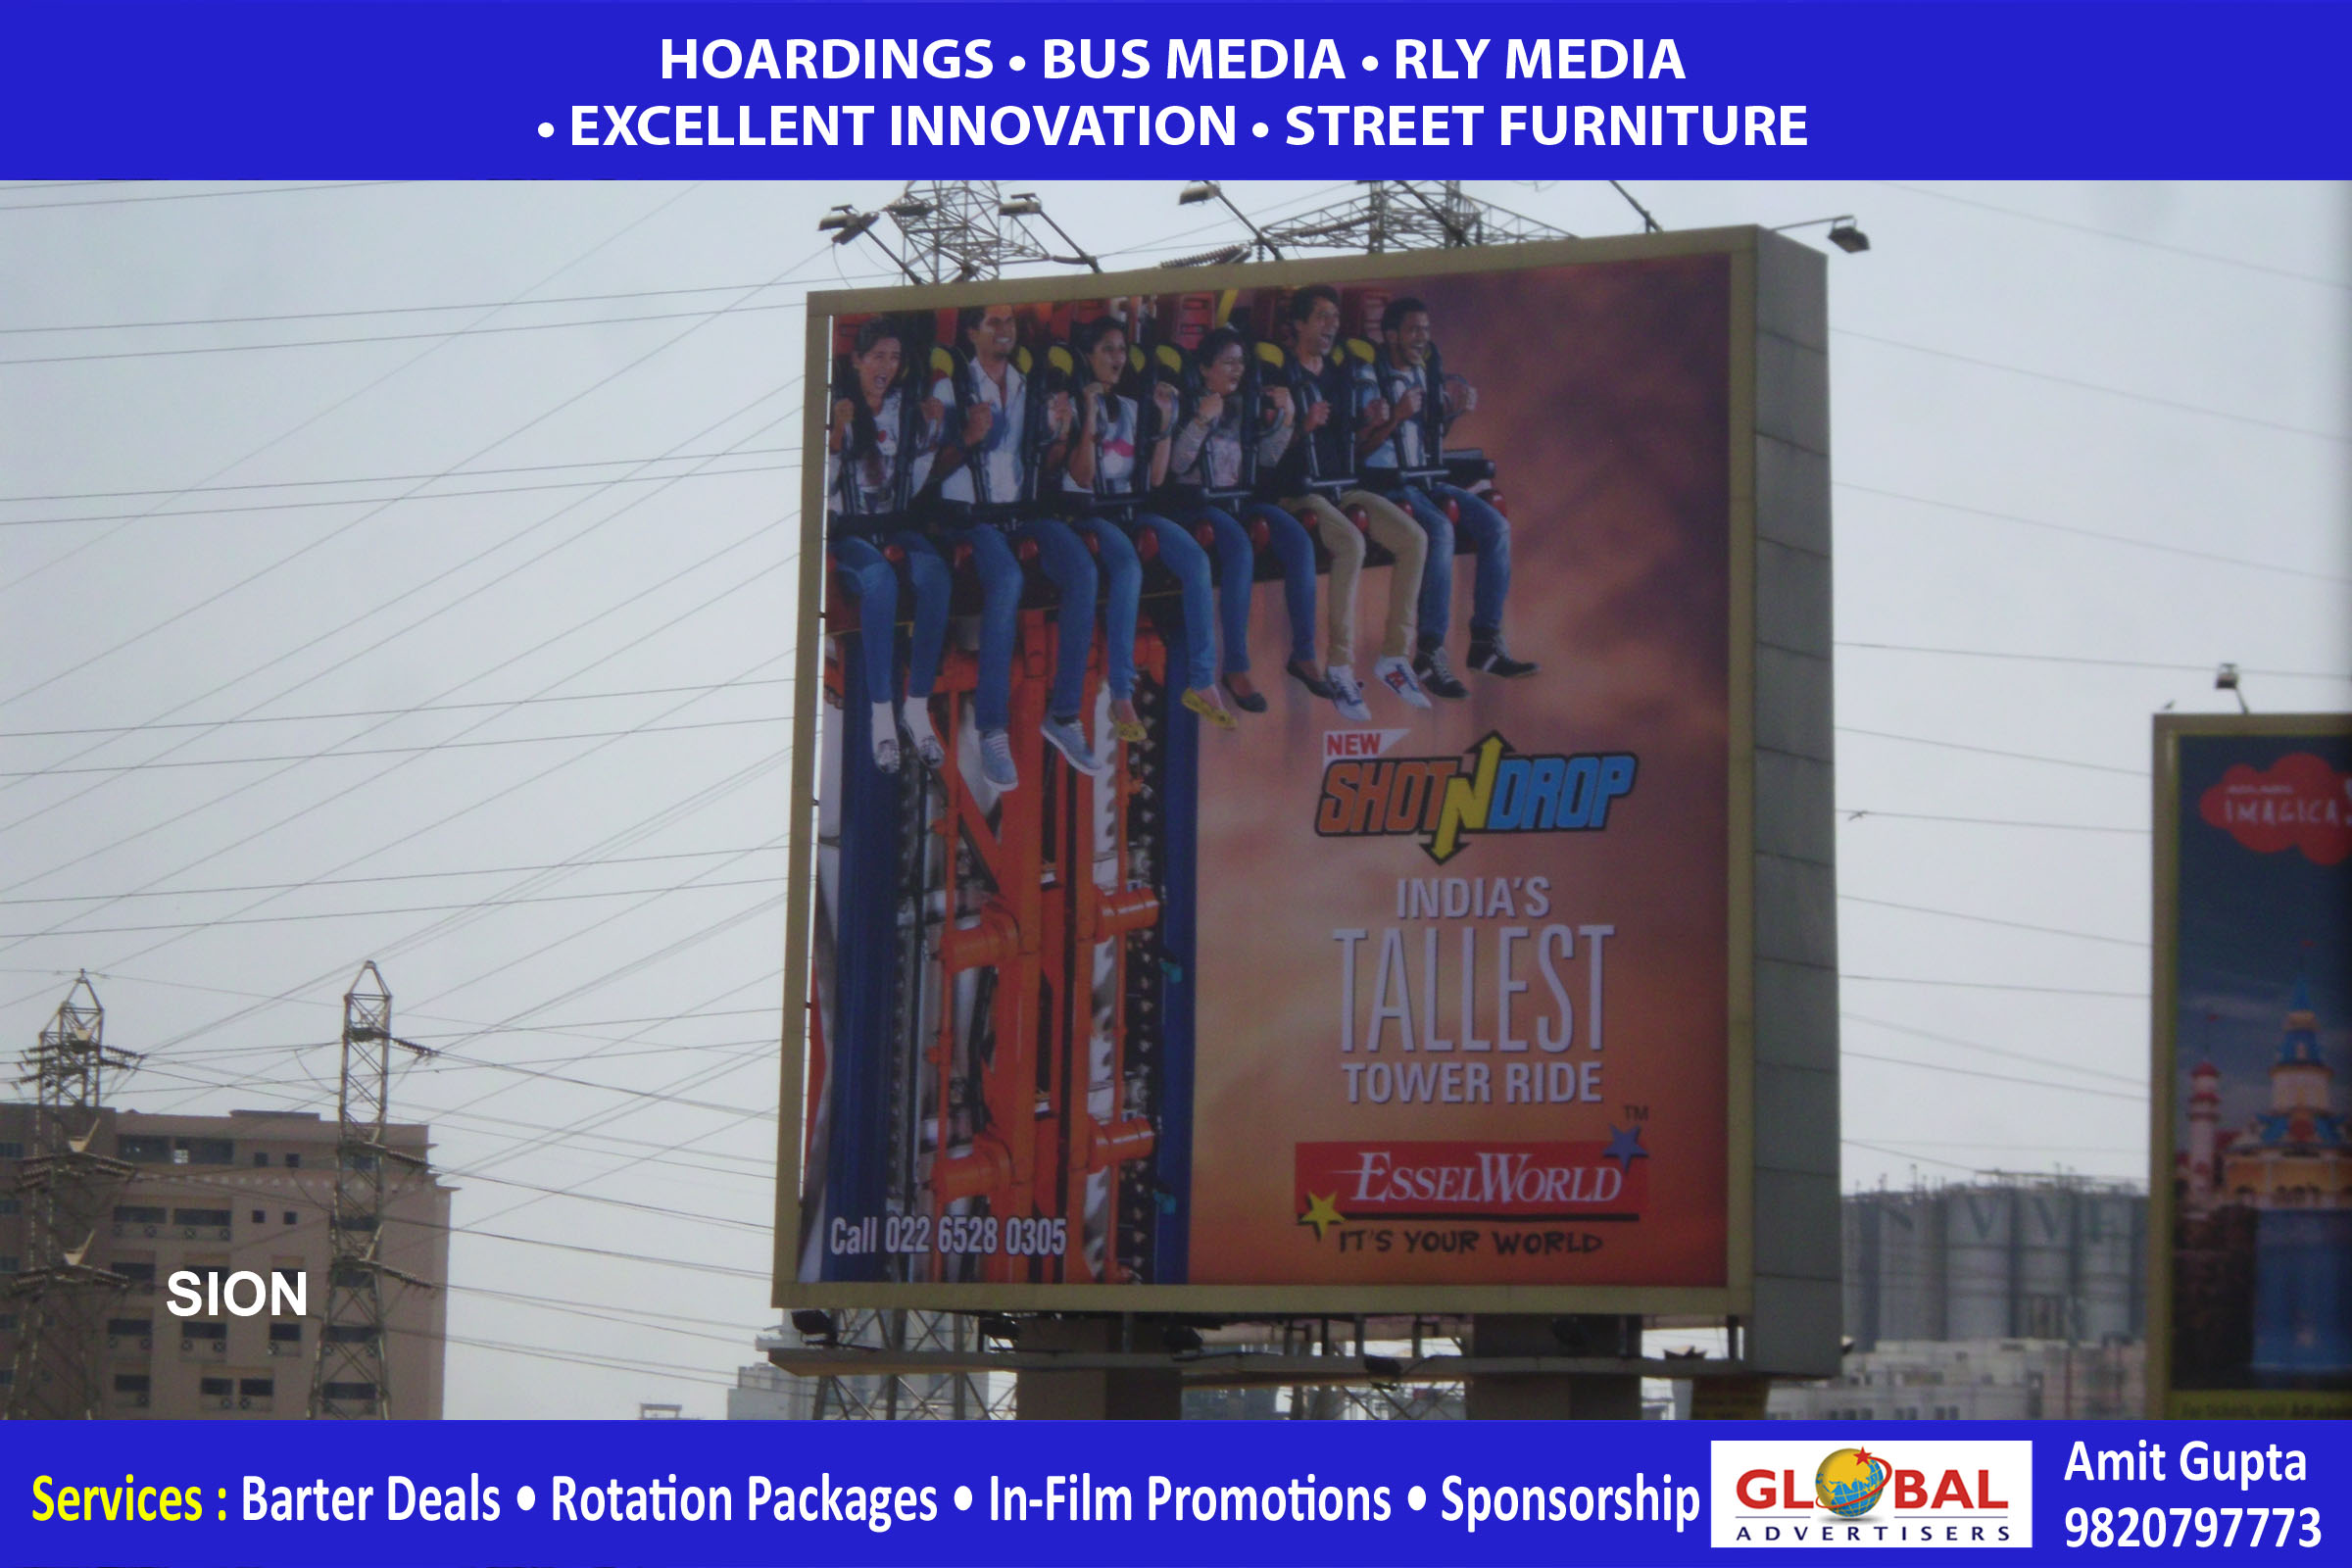 Tallest Tower Ride In India At Esselworld